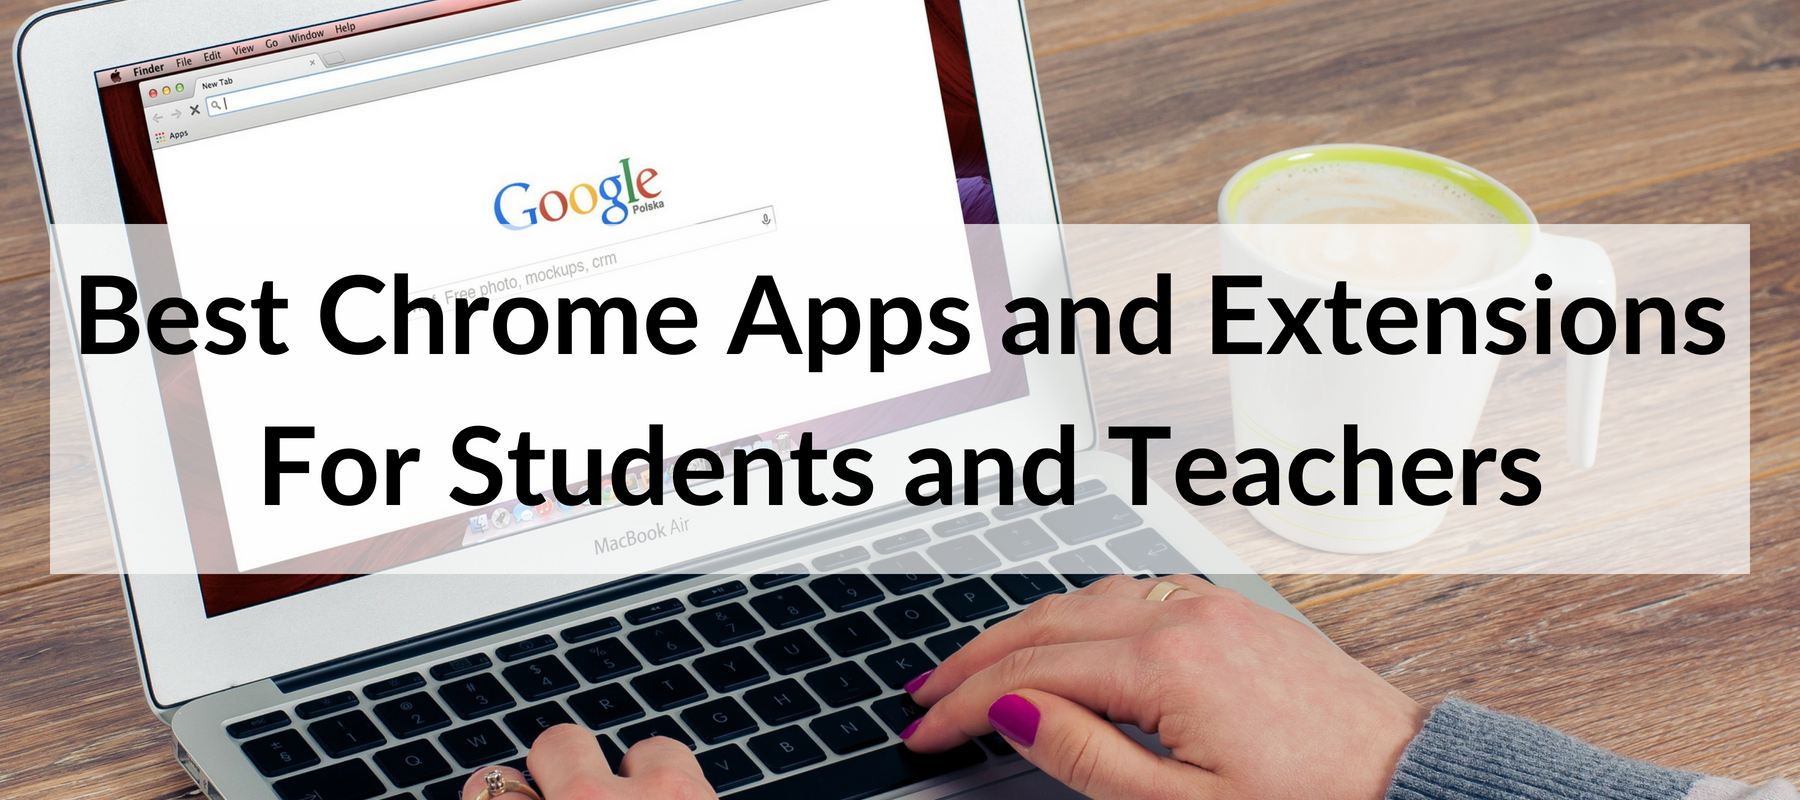 Best Chrome Apps and Extensions For Students and Teachers